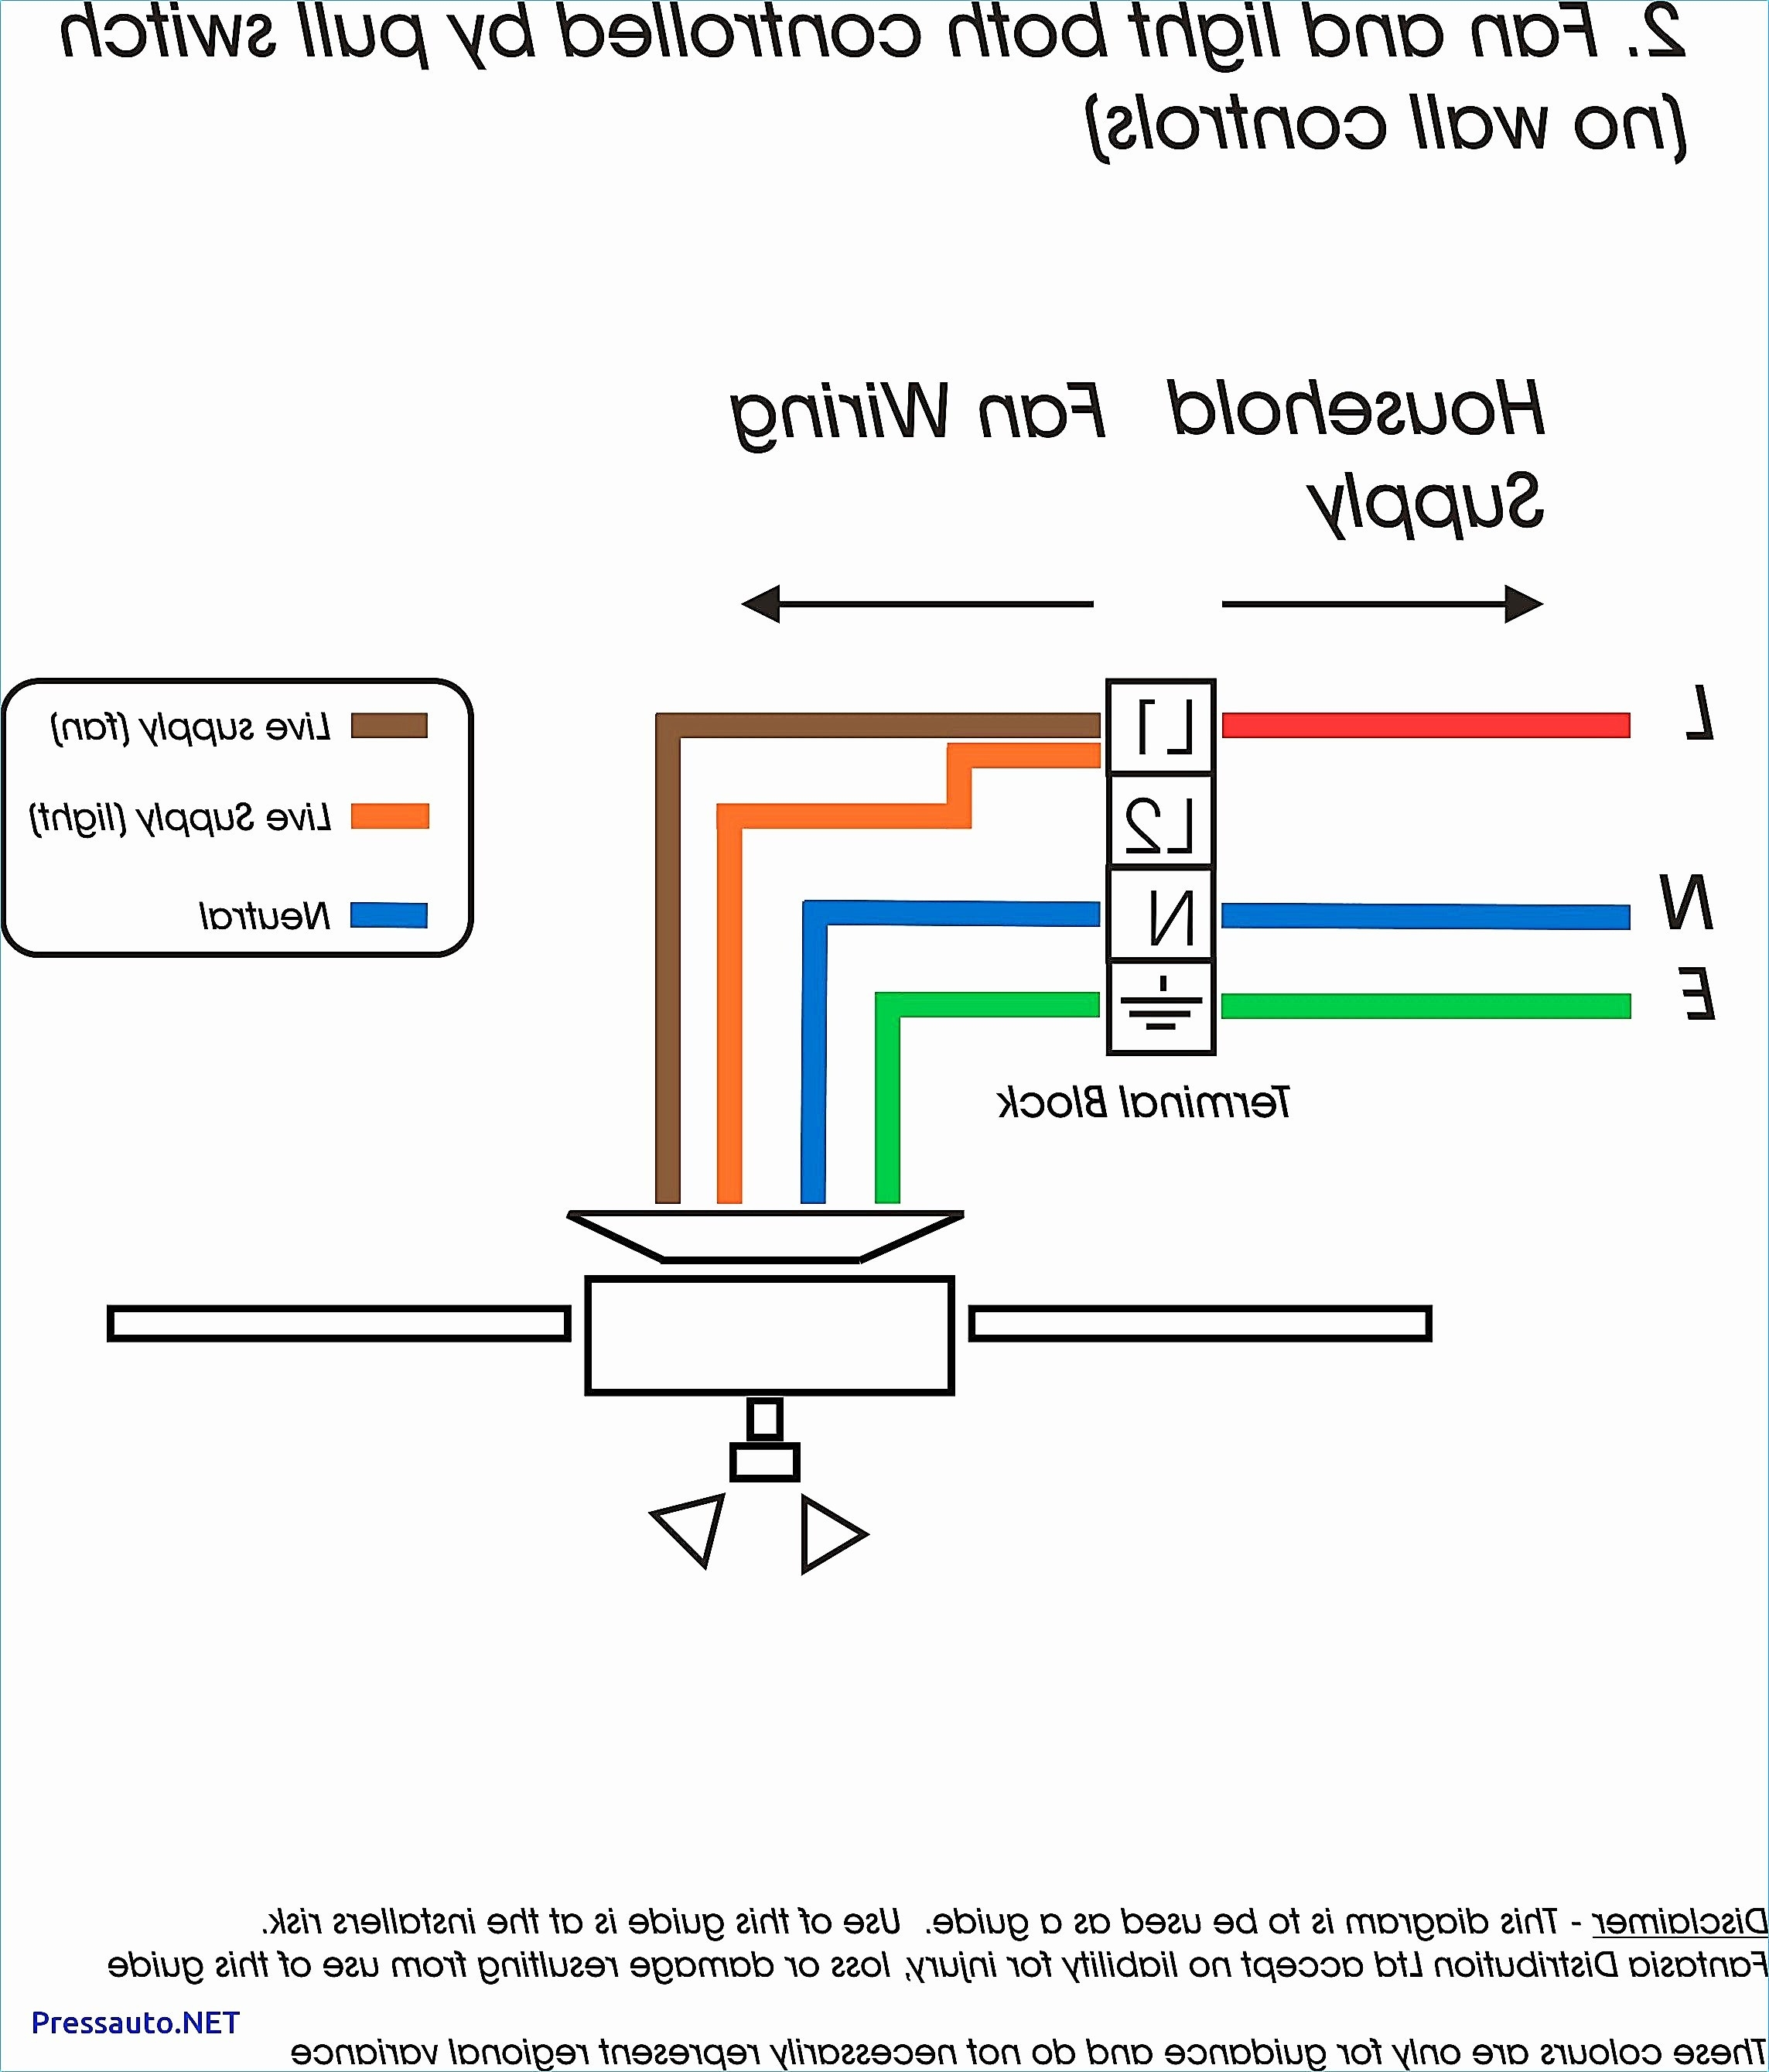 ignition relay wiring diagram Download-Ignition Relay Wiring Diagram Valid Lawn Mower Ignition Switch Wiring Diagram Unique Od Wiring Diagram 7-c